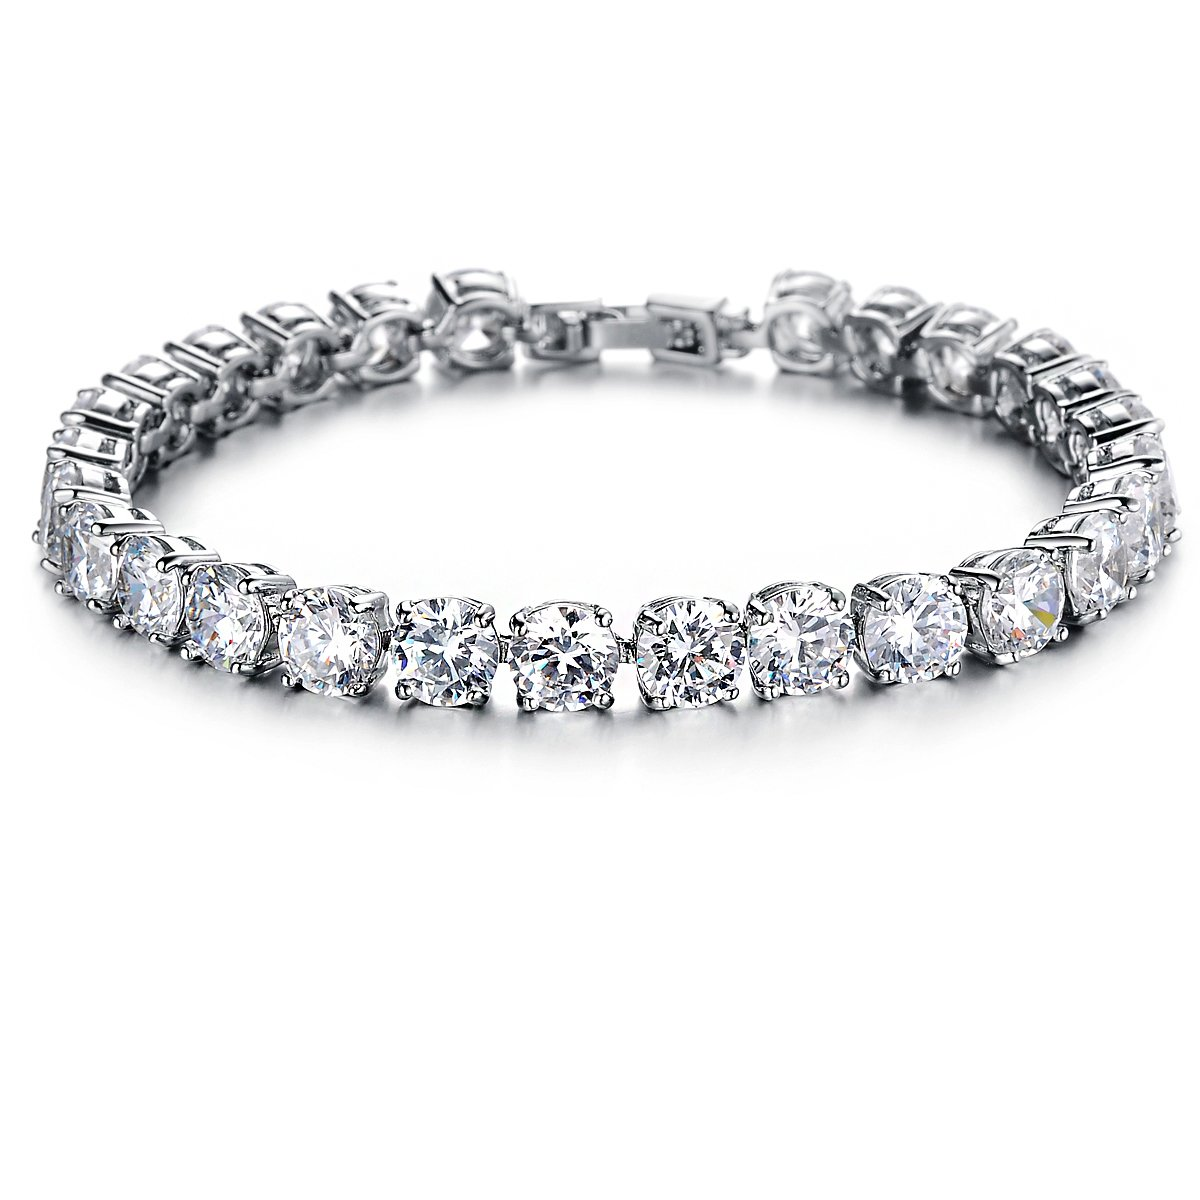 OPK Jewelry Platinum Plated Women Tennis Bracelet with Clear Cubic Zirconia DS928-White